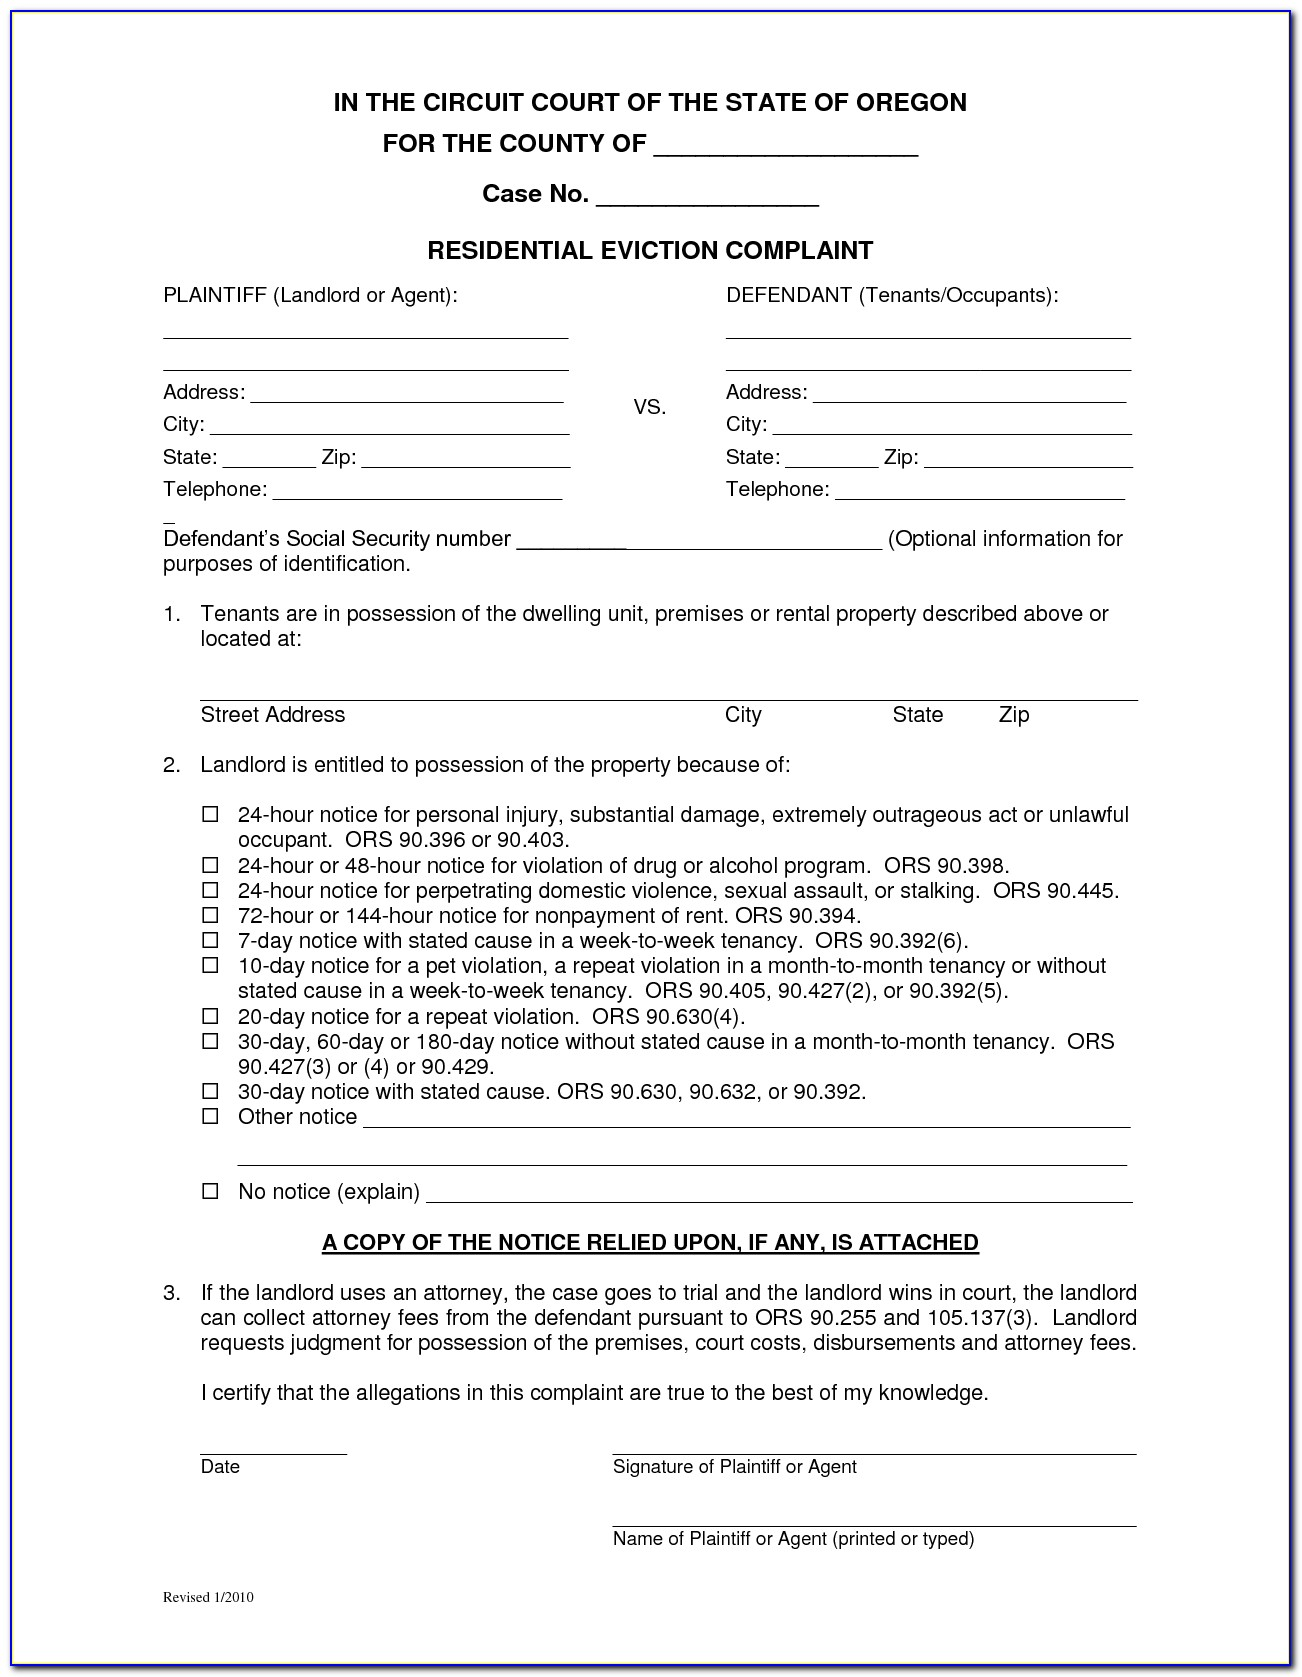 King County Washington Divorce Forms